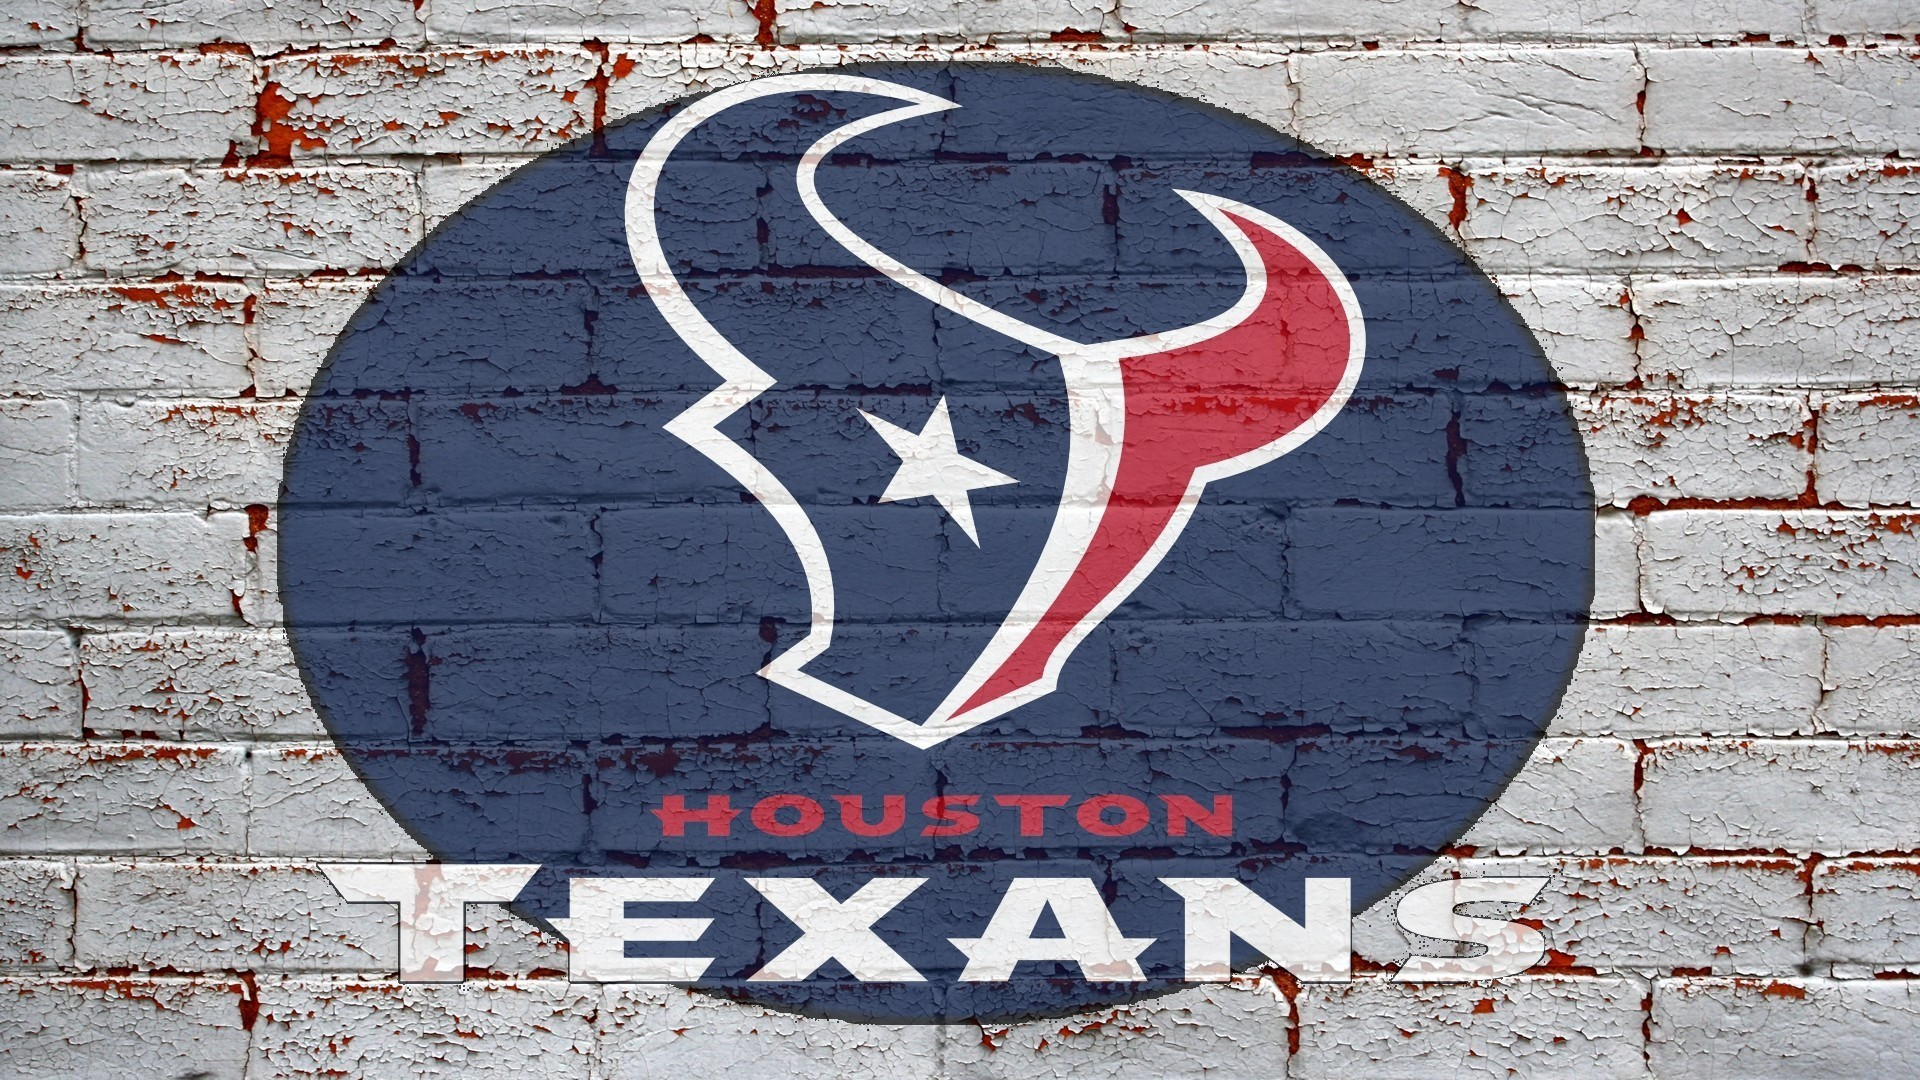 1920 x 1080px houston texans wallpaper pack 1080p hd by Cartwright WilKinson